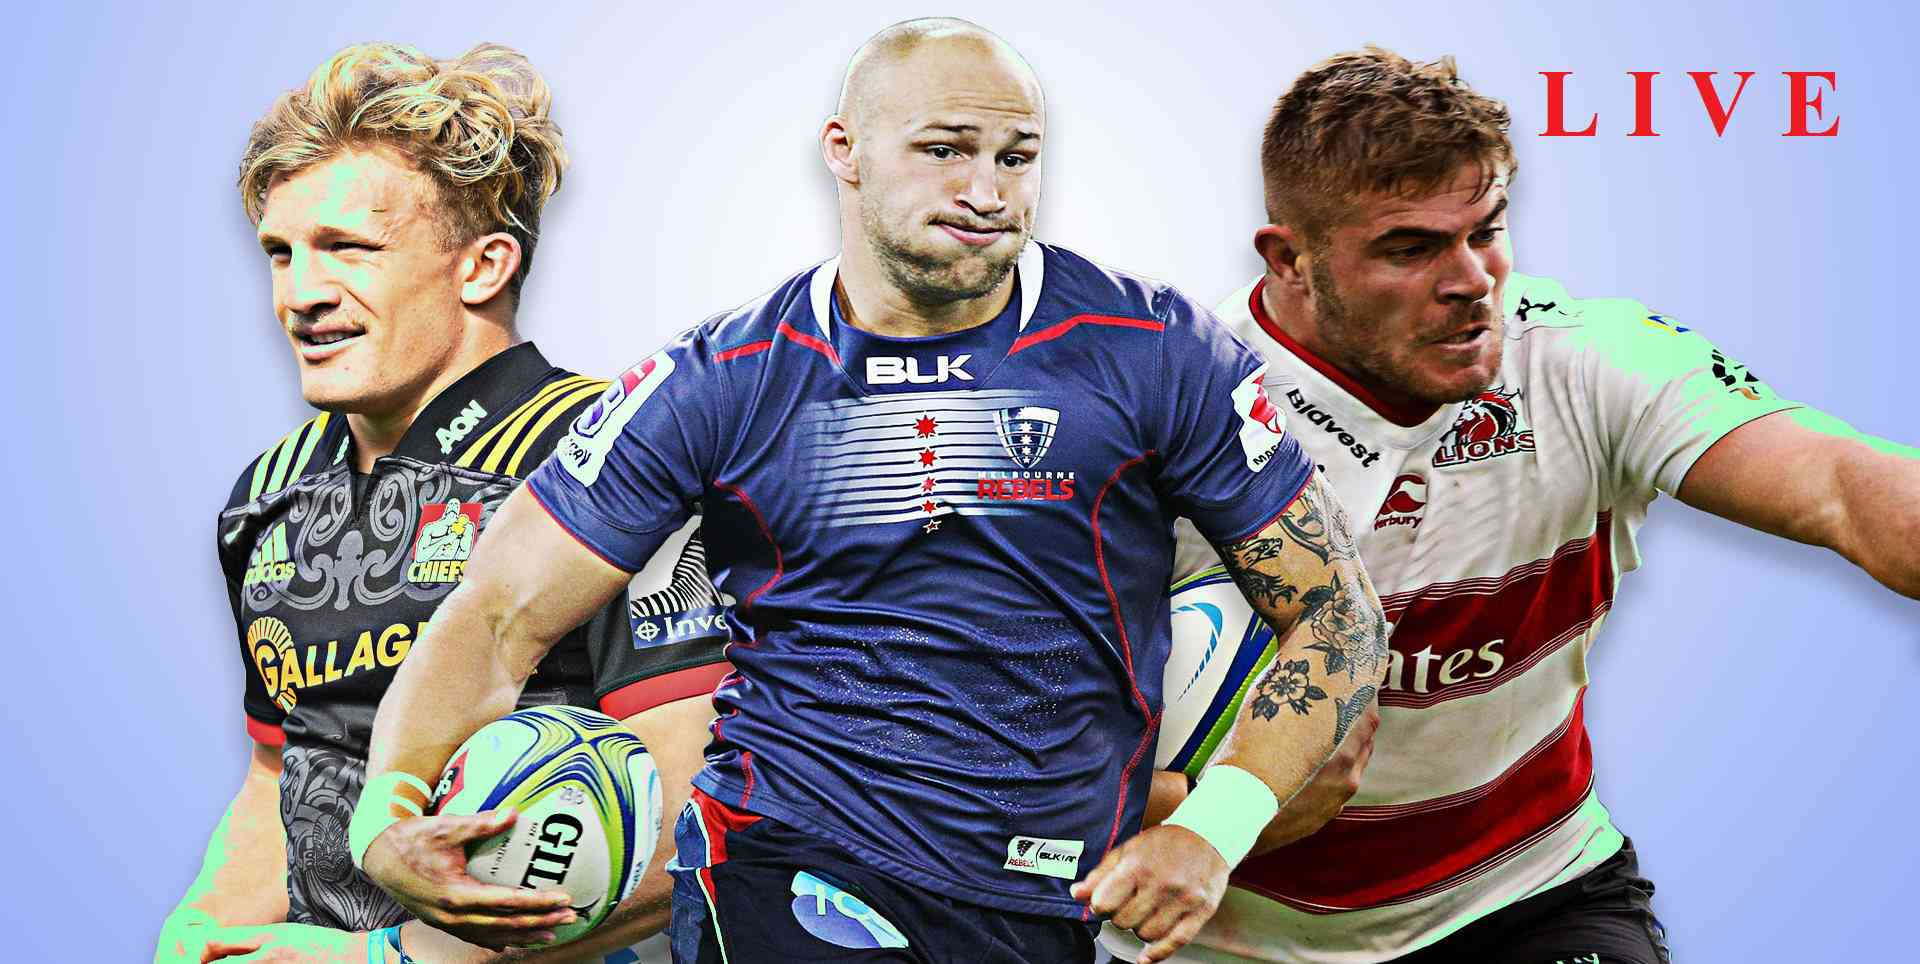 edinburgh-vs-stade-francais-paris-stream-live